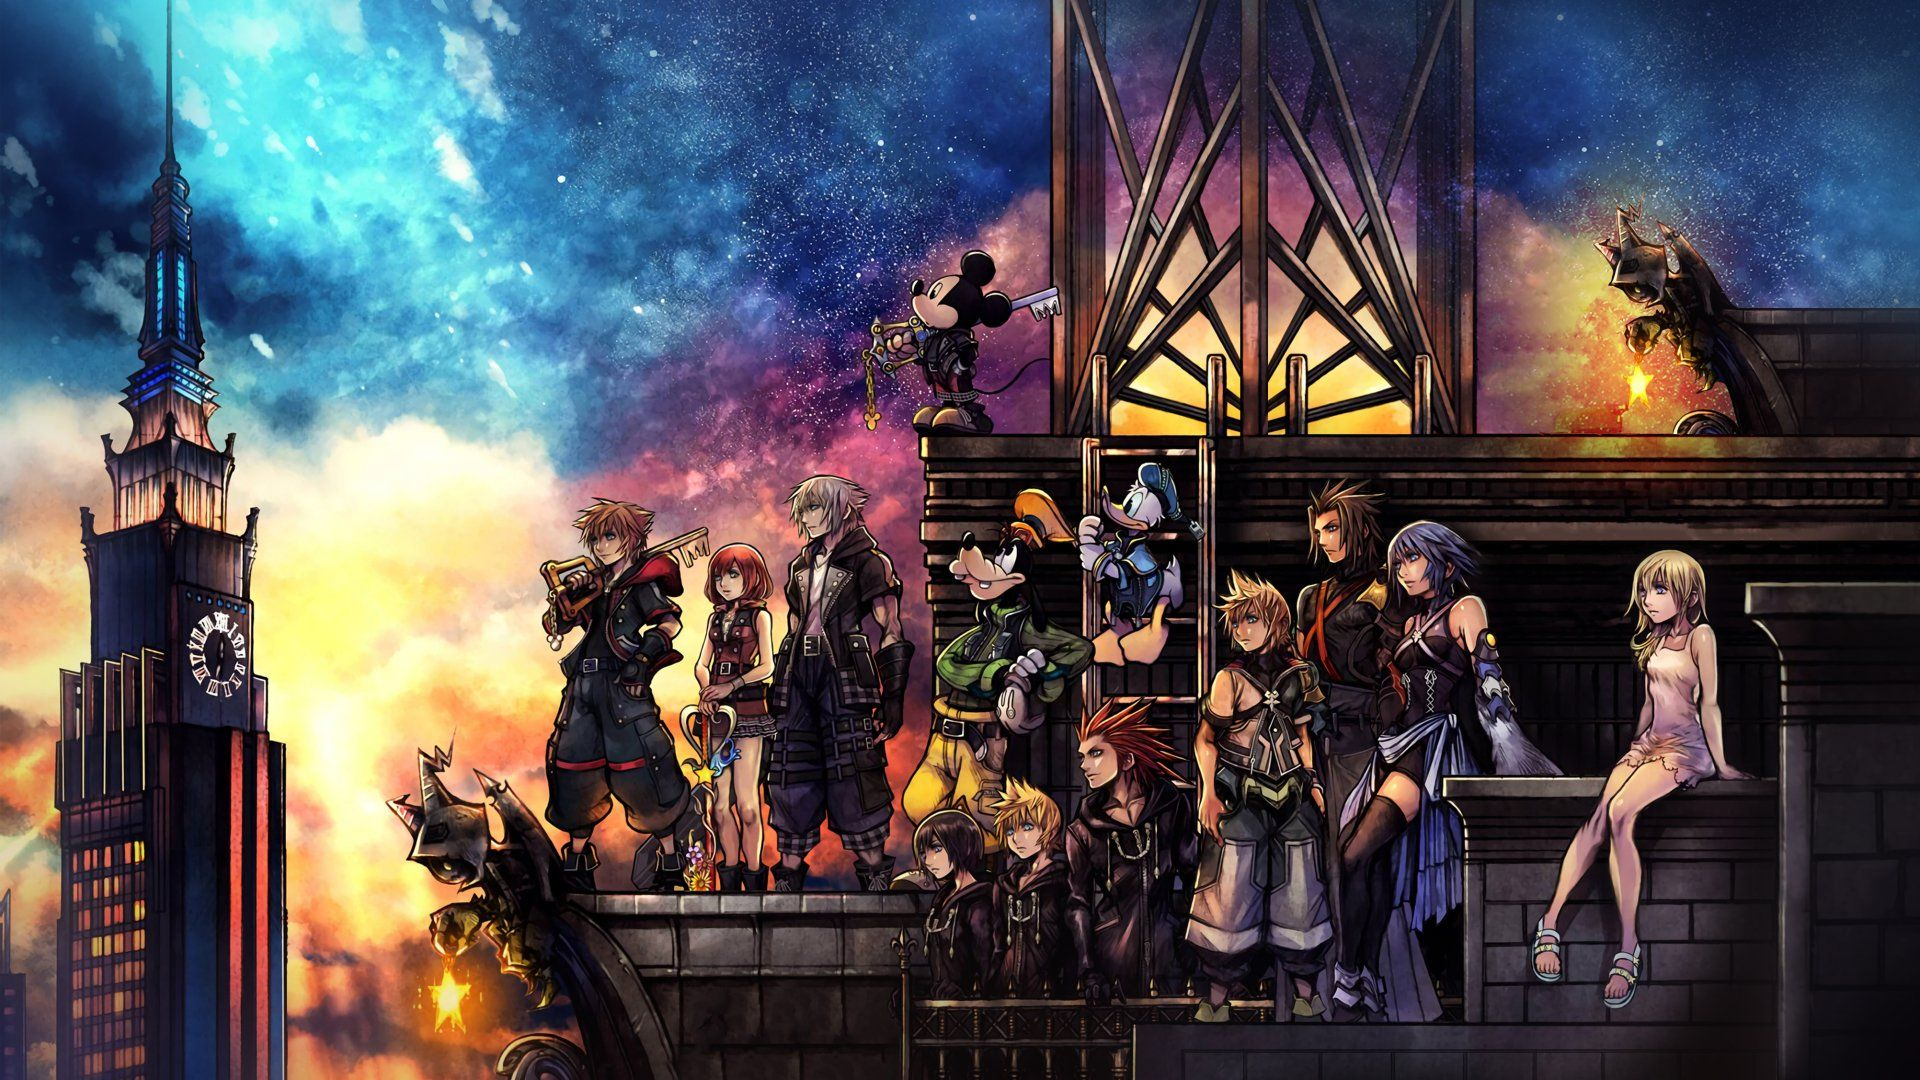 4008x2254 Kingdom Hearts Iii Wallpaper Background Image View Download Comment And Rate Wallp Kingdom Hearts Wallpaper Kingdom Hearts Terra Kingdom Hearts